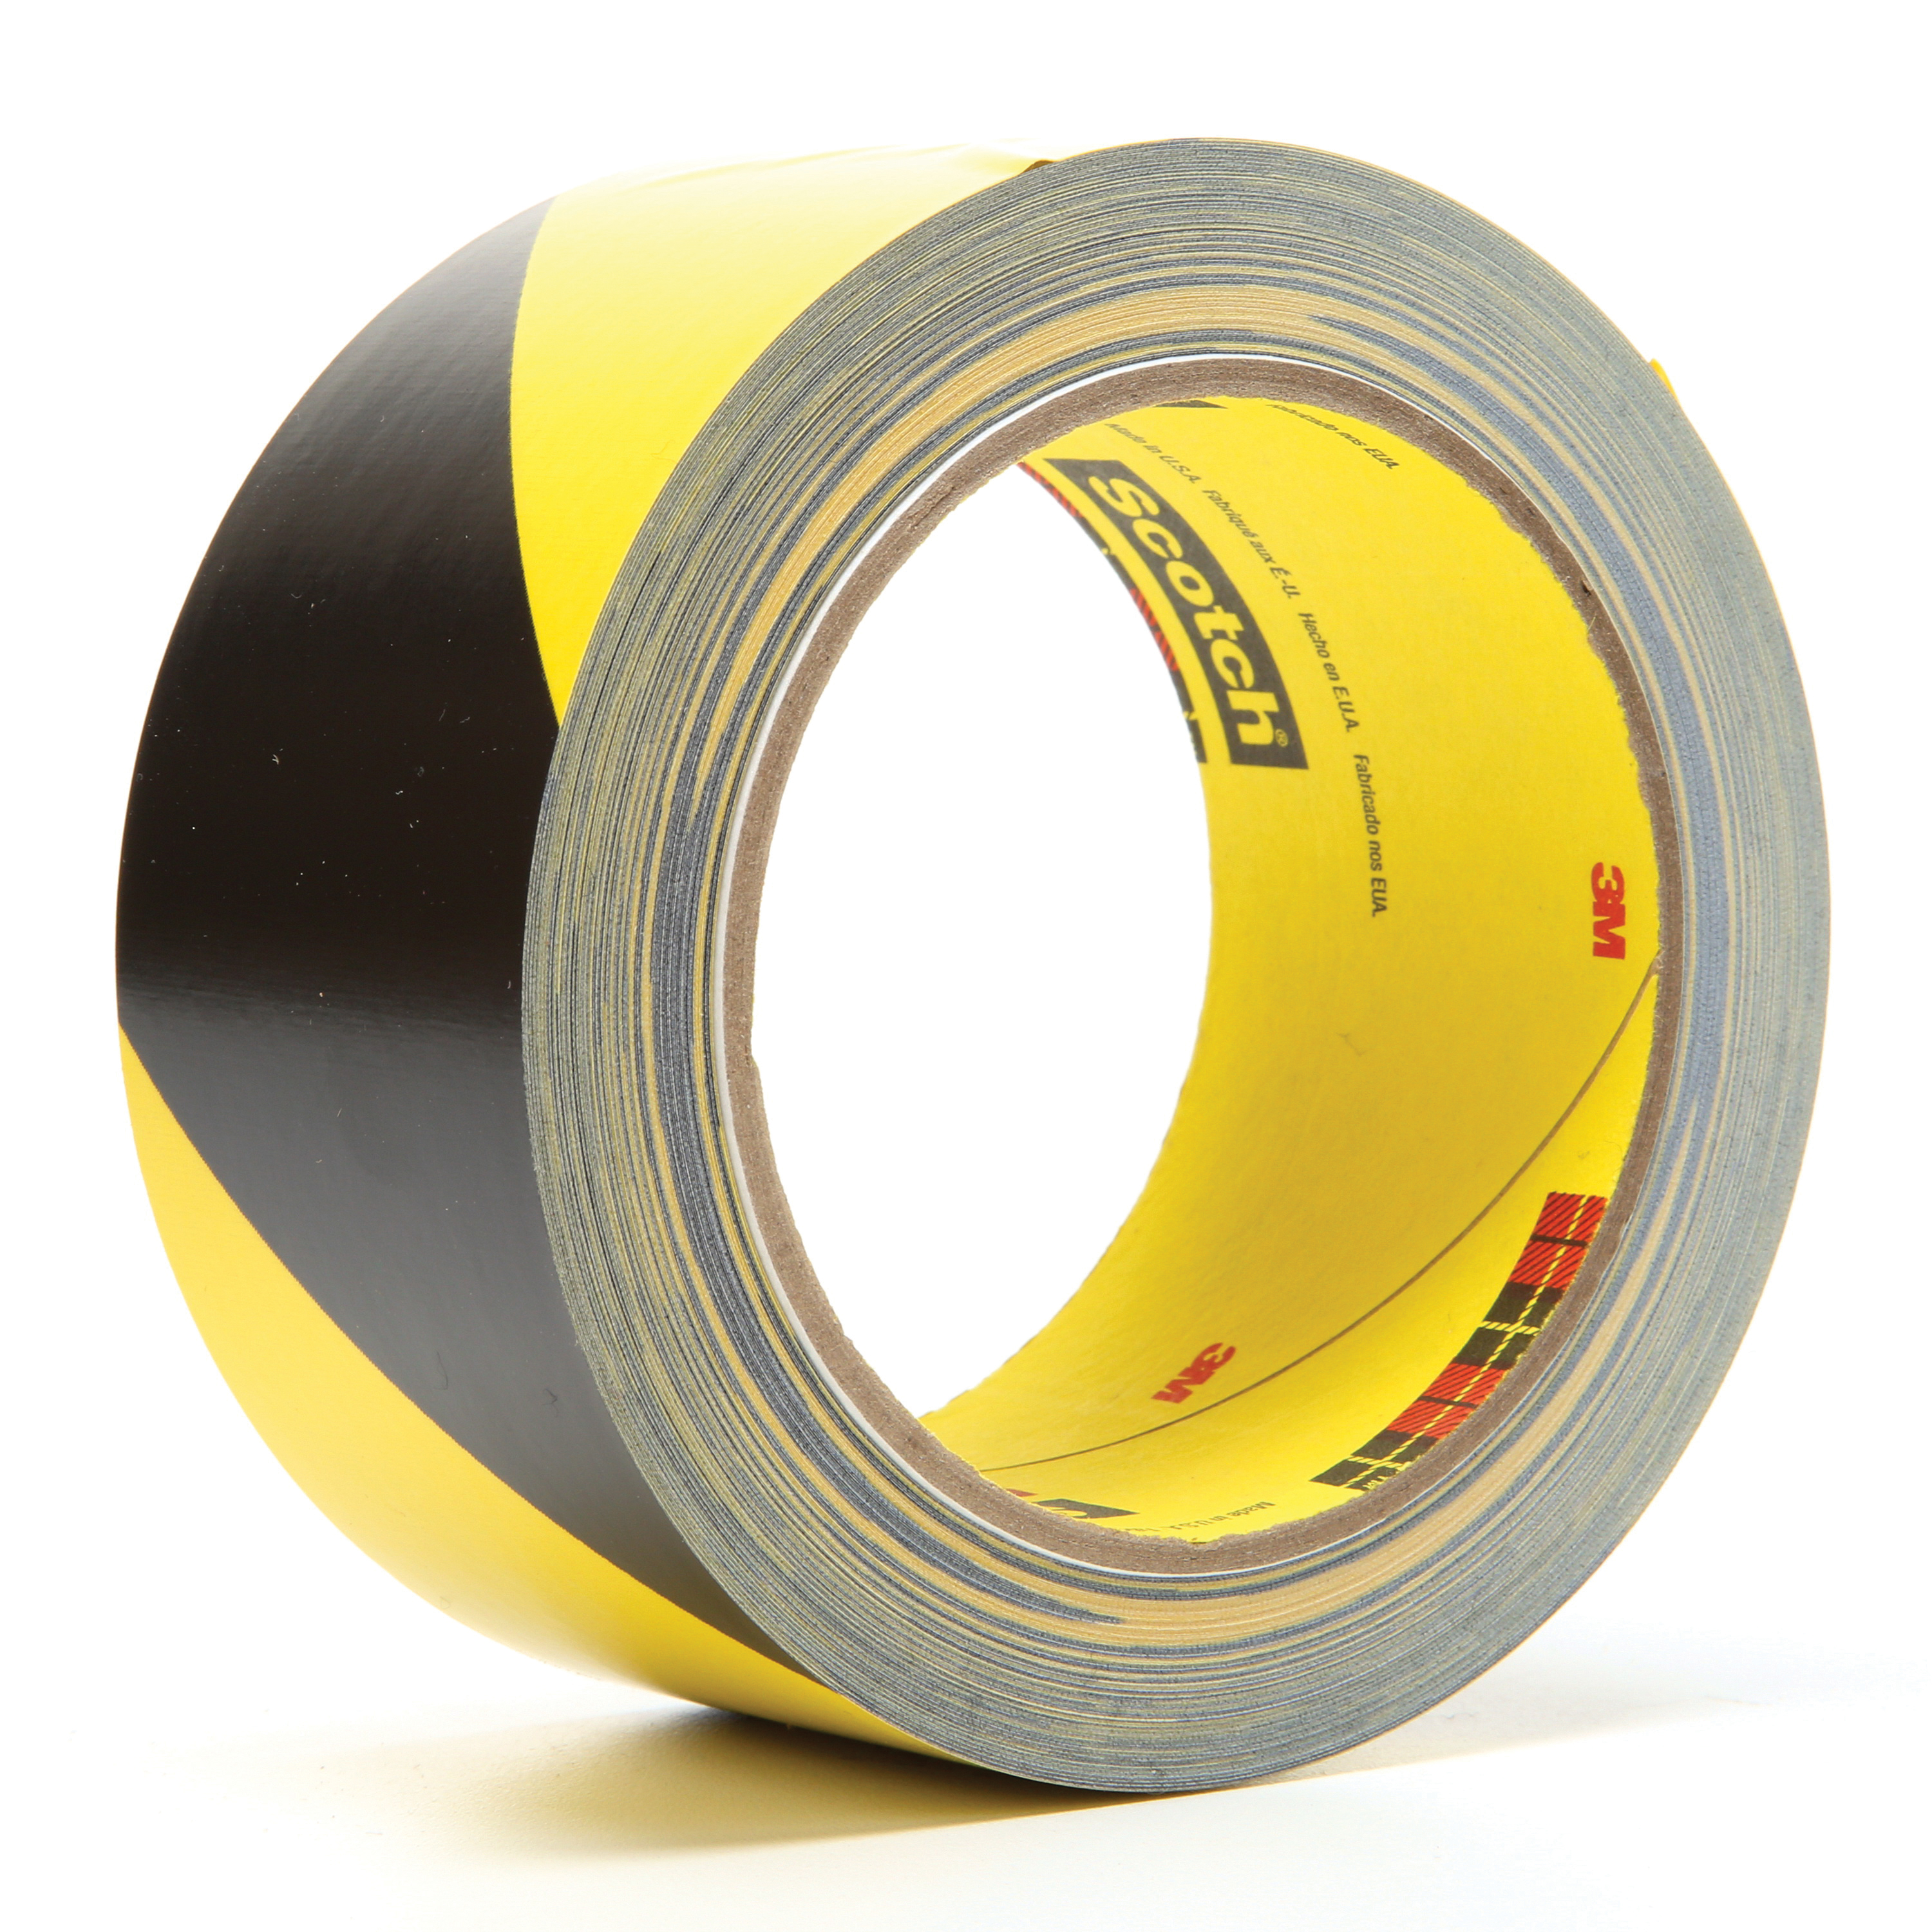 3M™ 021200-04585 5702 Safety Stripe Tape, 36 yd L x 2 in W, Black/Yellow, Rubber Adhesive/Vinyl Backing